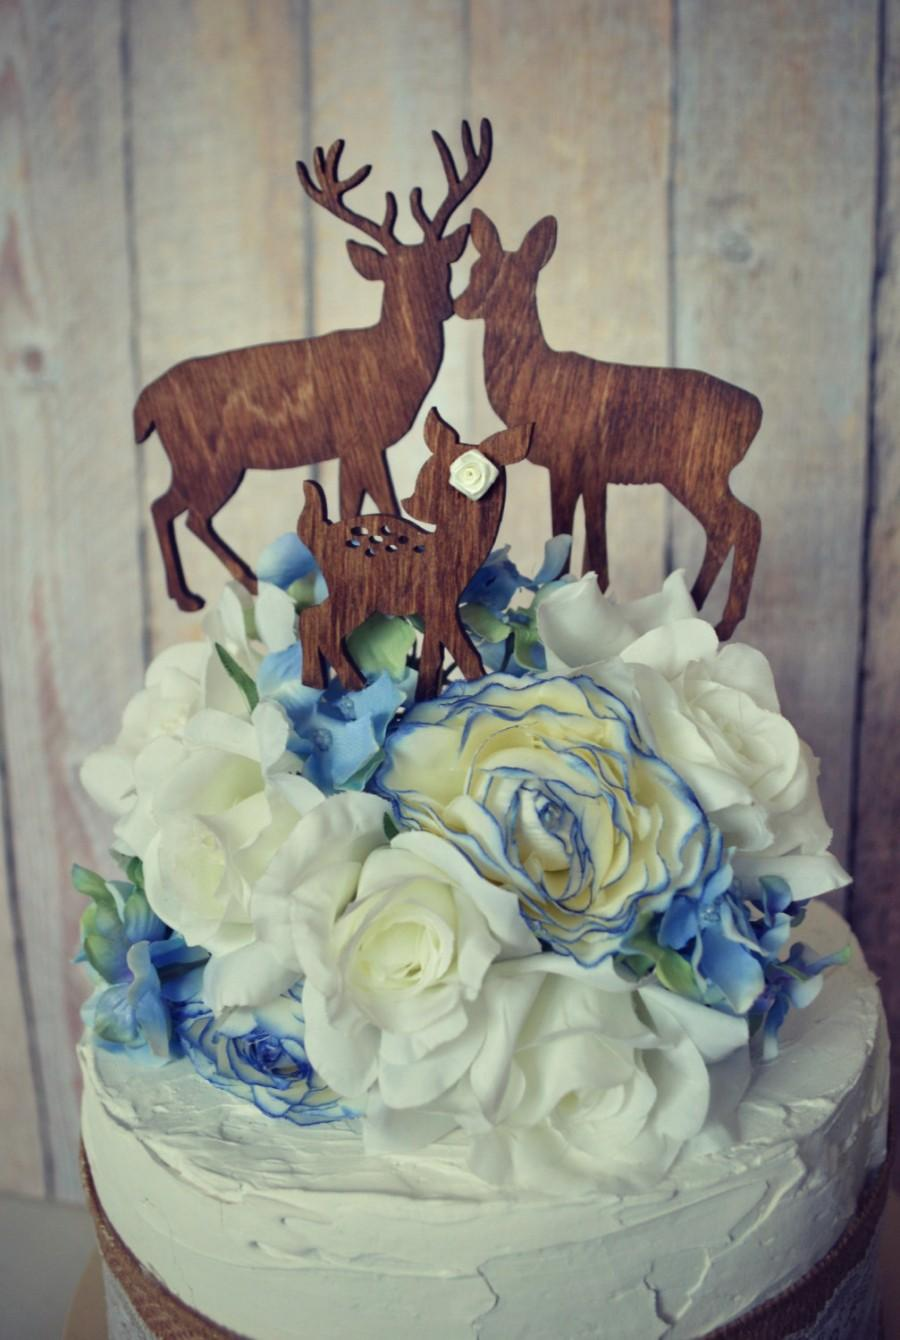 Hochzeit - Deer family wedding cake topper deer silhouette wood hunting groom hunter camouflage themed bride groom topper buck doe fawn antlers rack